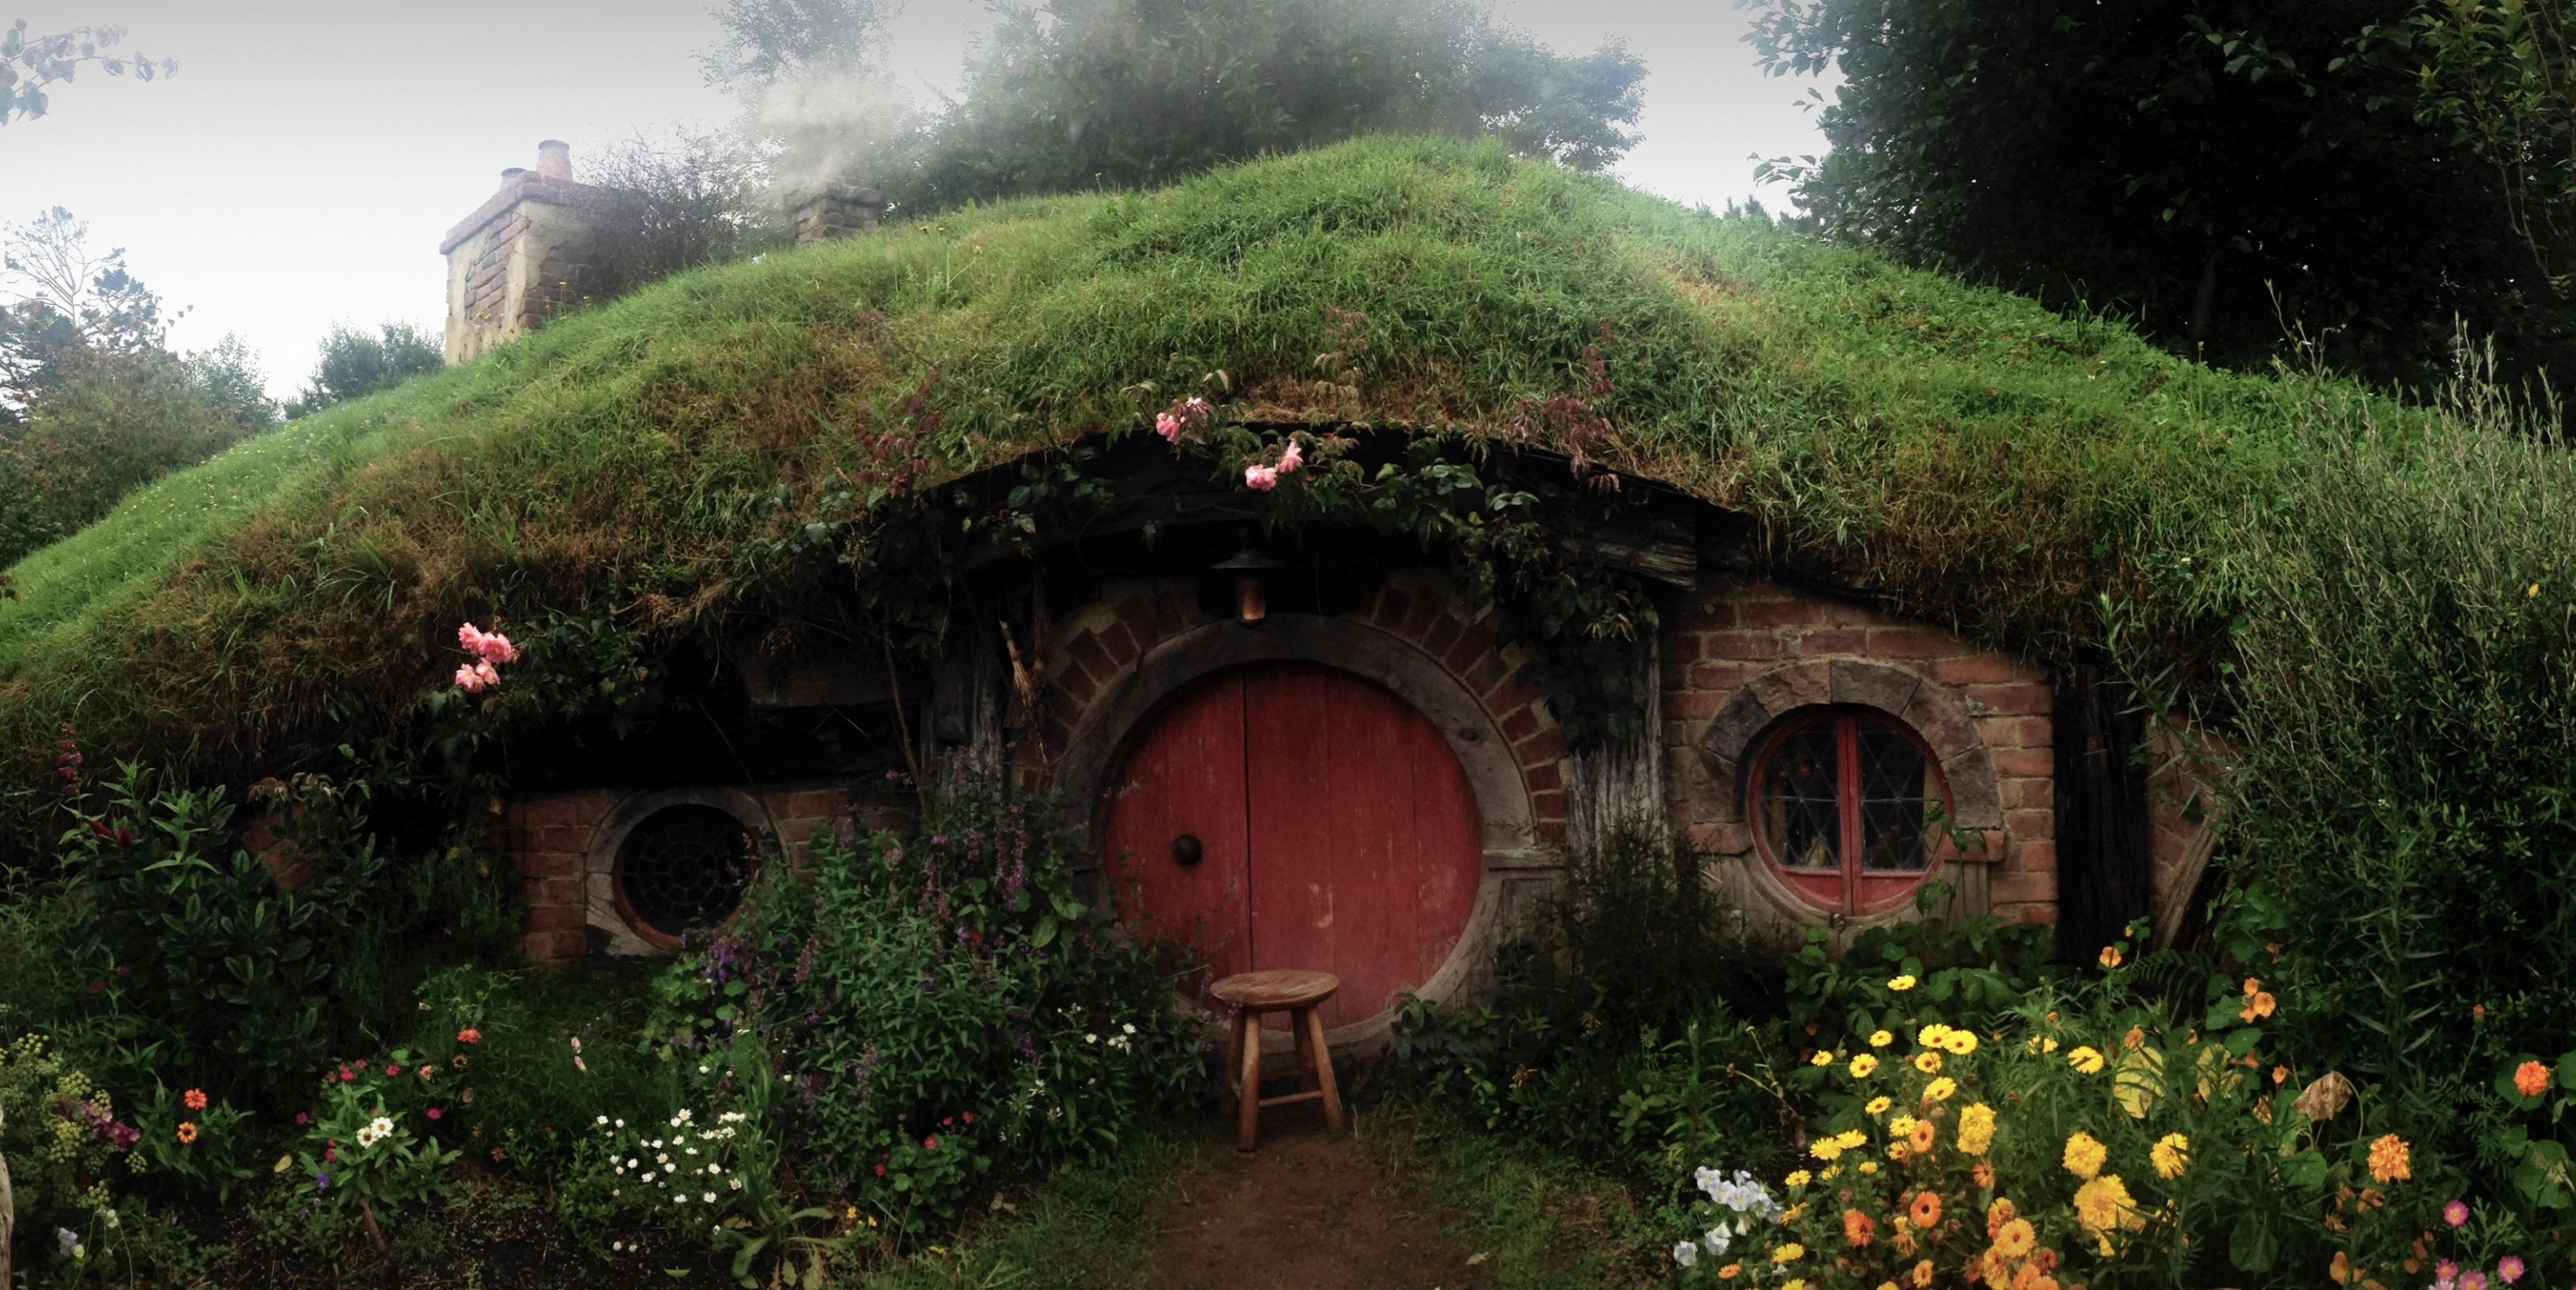 The Hobbit Iphone Wallpaper The Shire Wallpaper And Background Image 1366x768 Id